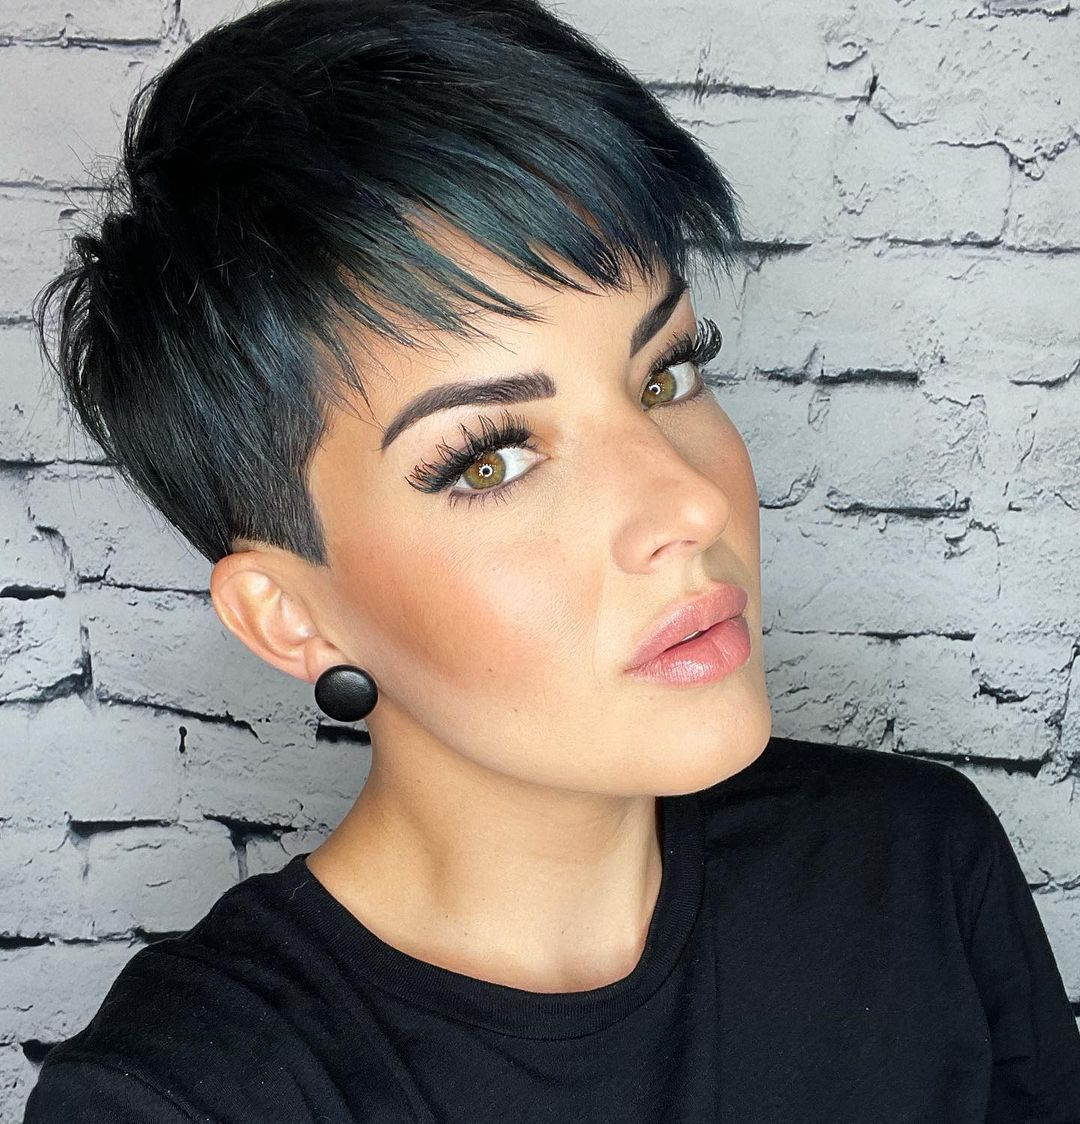 layered short hairstyles that can be preferred for date nights 24